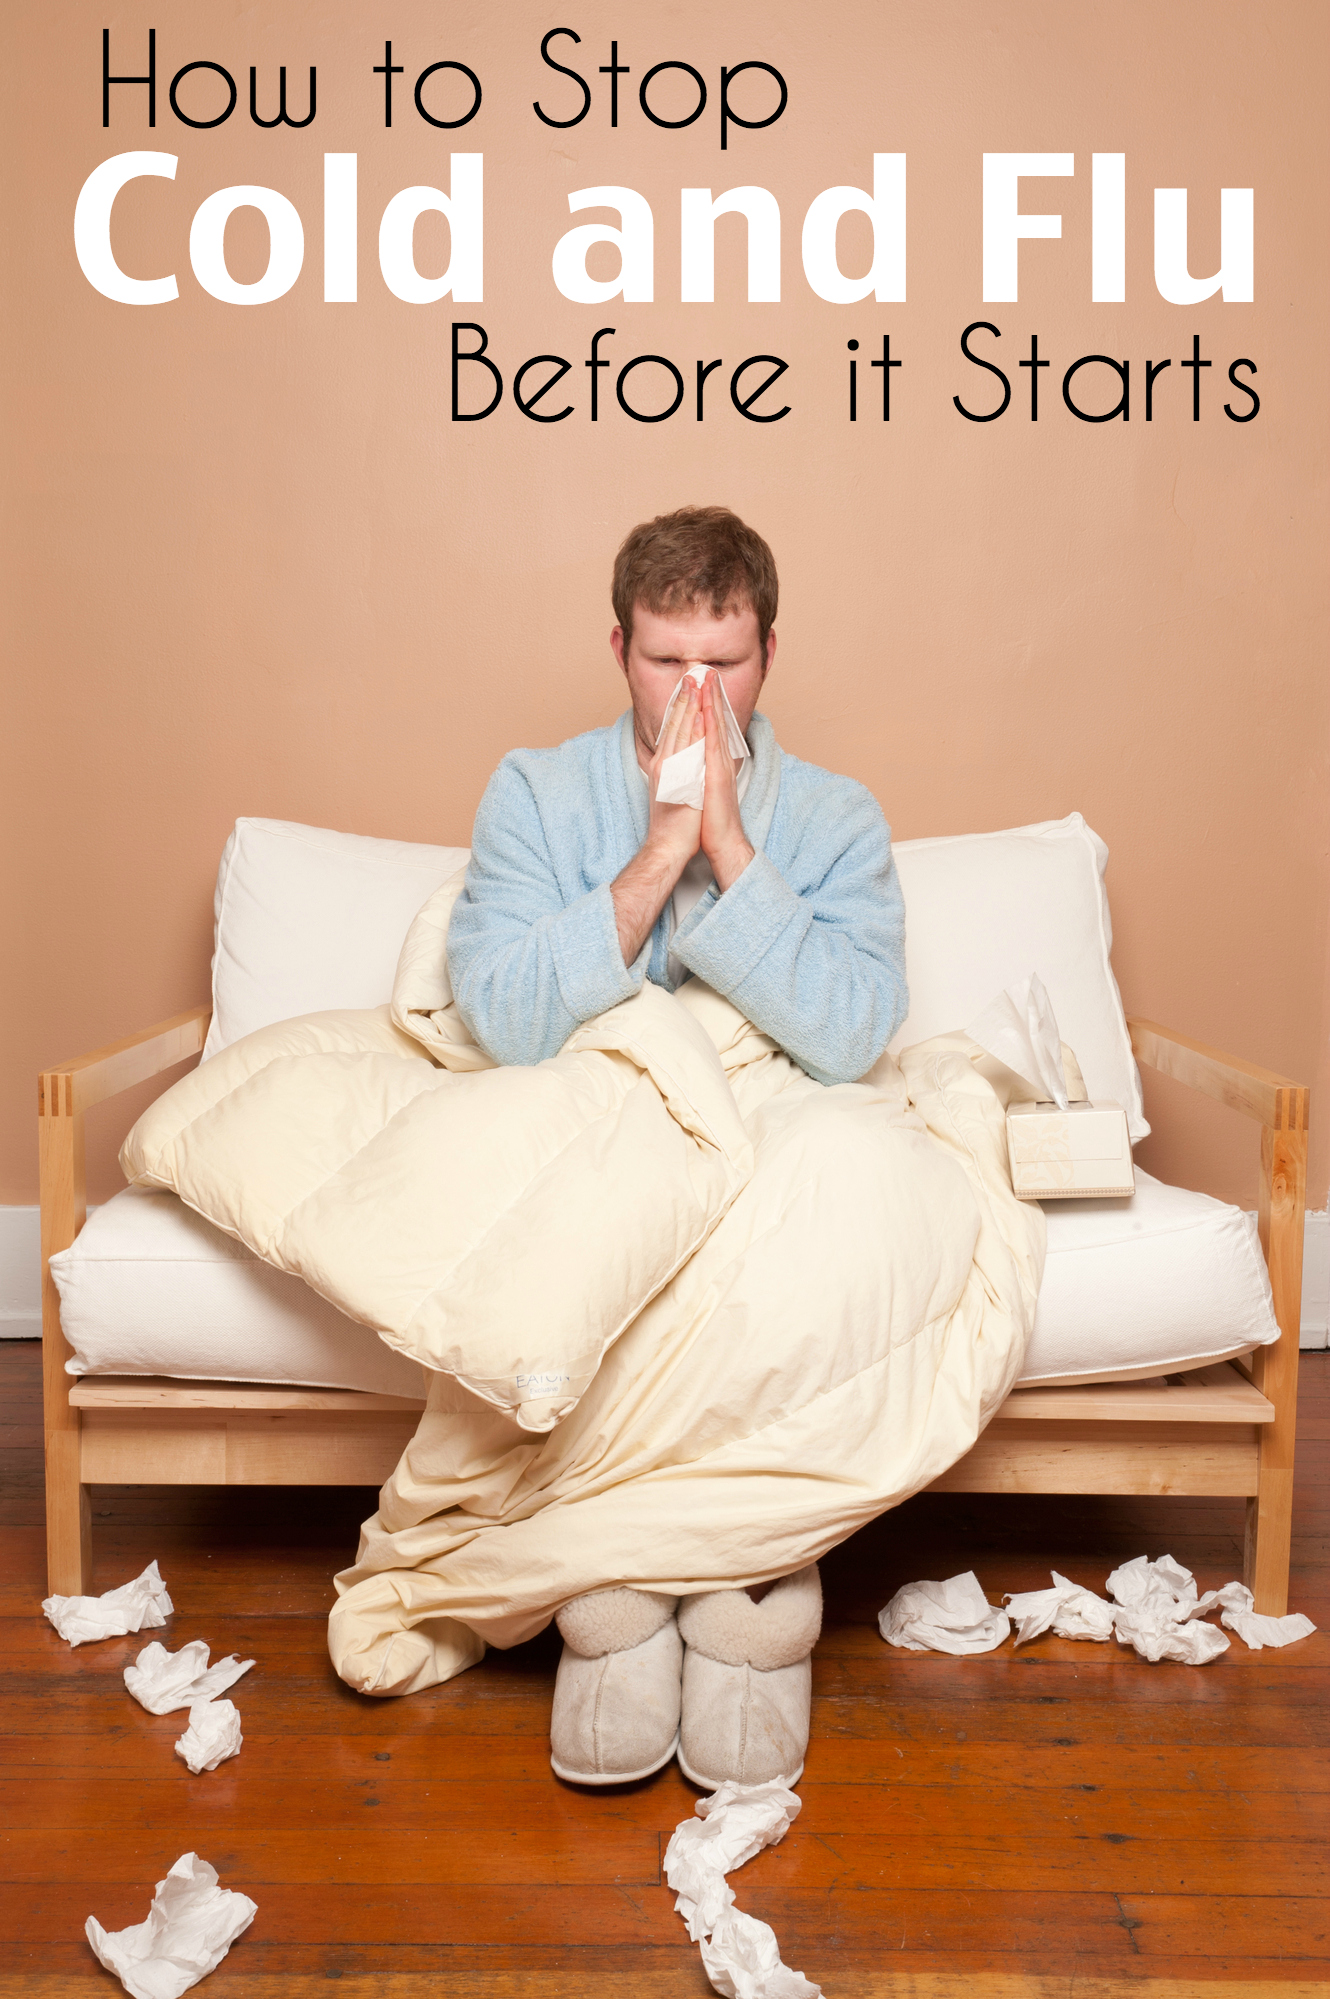 How to stop cold and flue before it starts, 7 preventative tips plus how to lessen duration